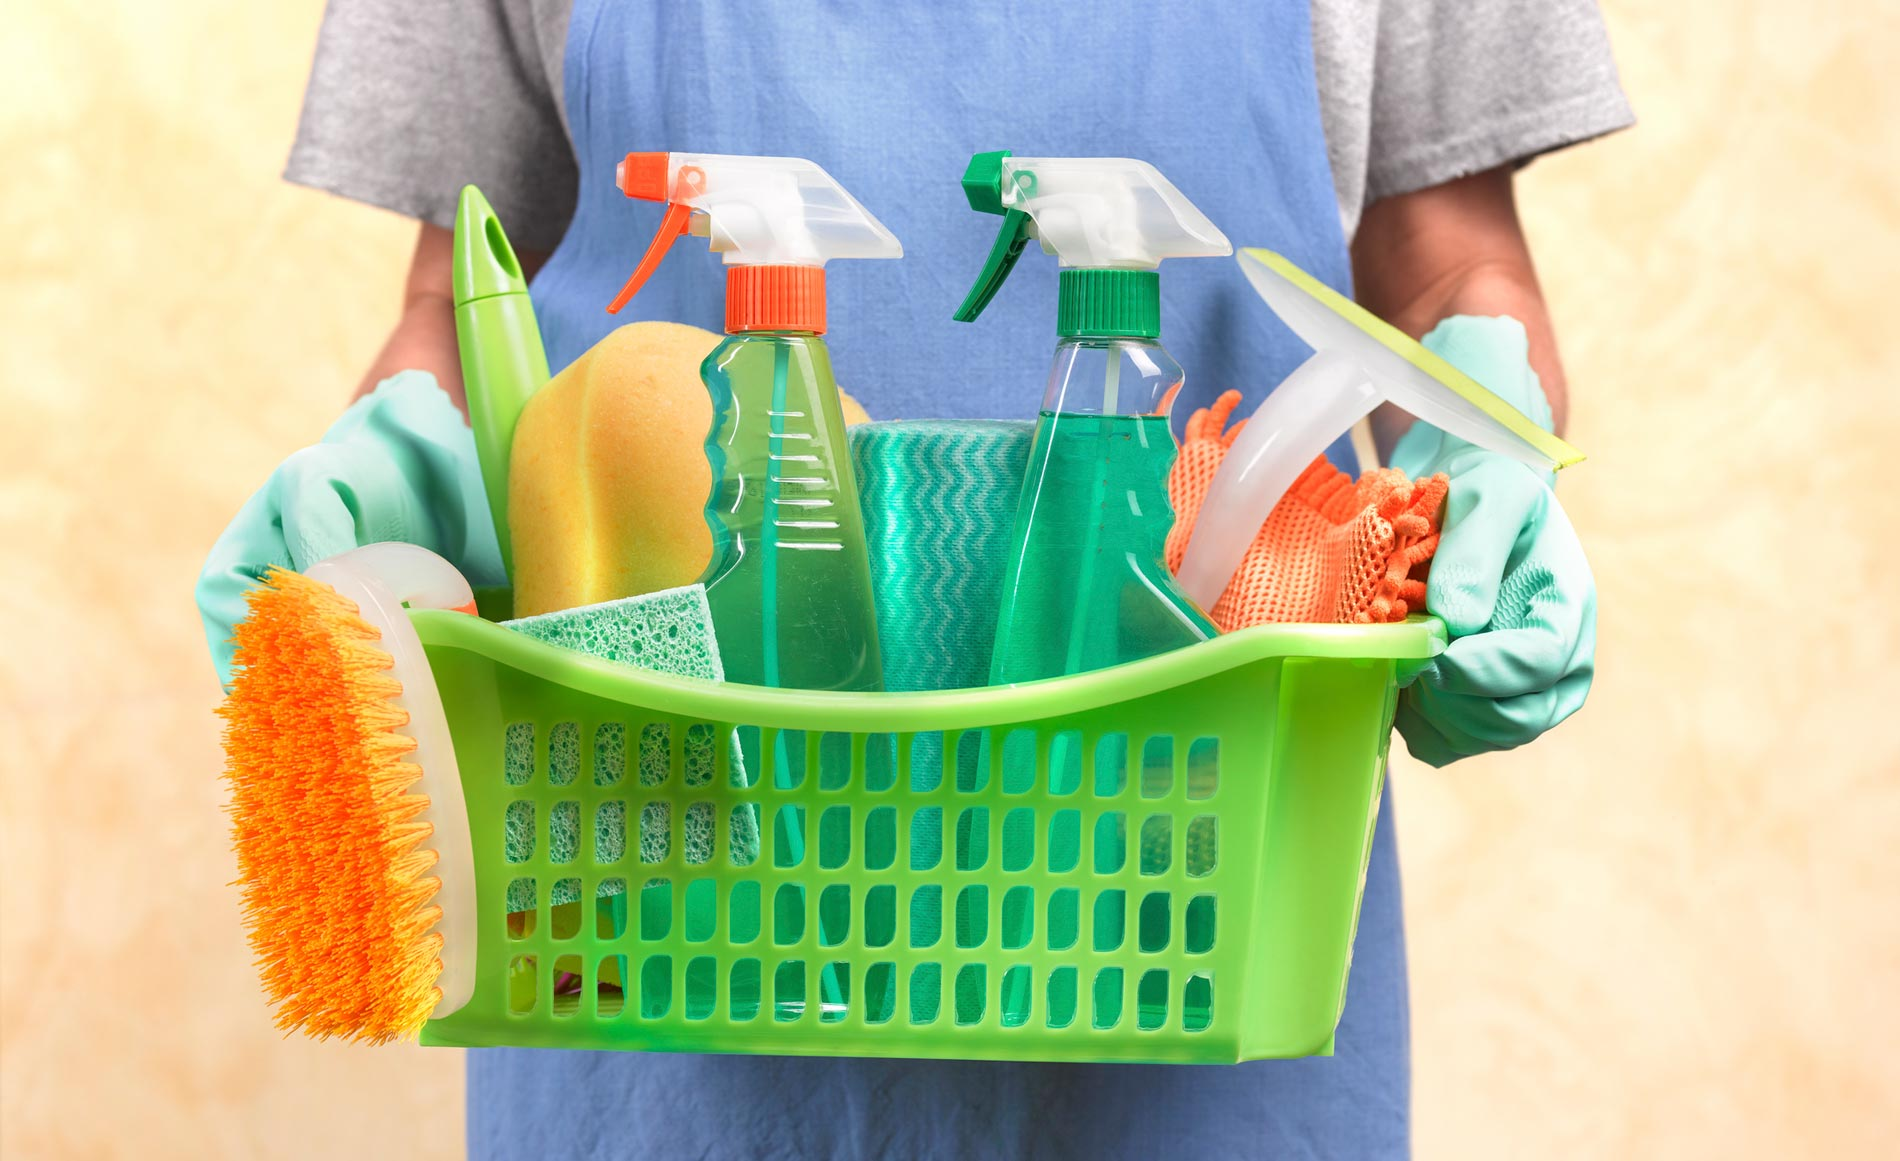 Cleaning products in a basket